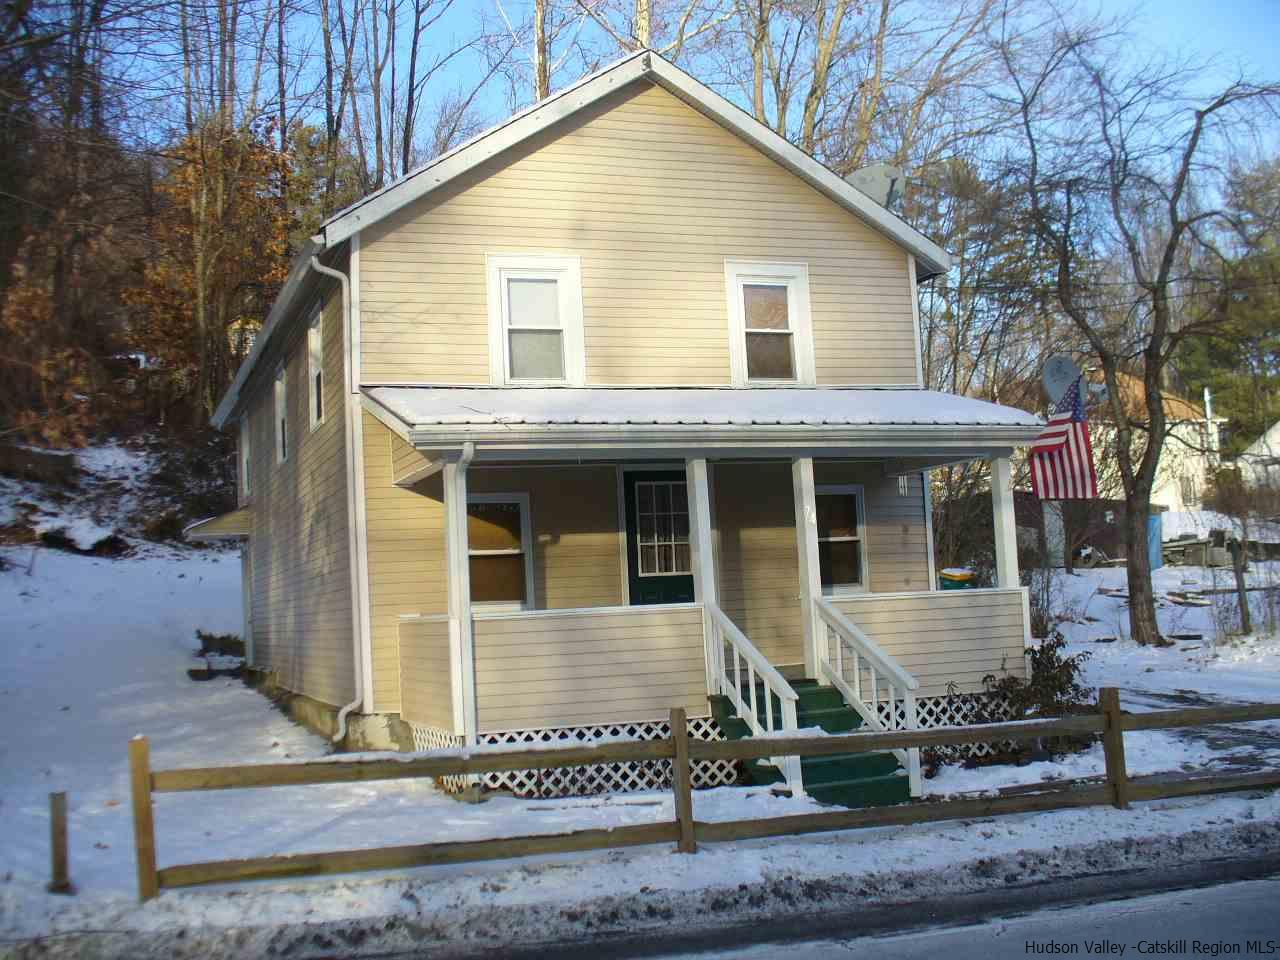 Single Family Home for Sale at 74 Rt 55 74 Rt 55 Napanoch, New York 12458 United States